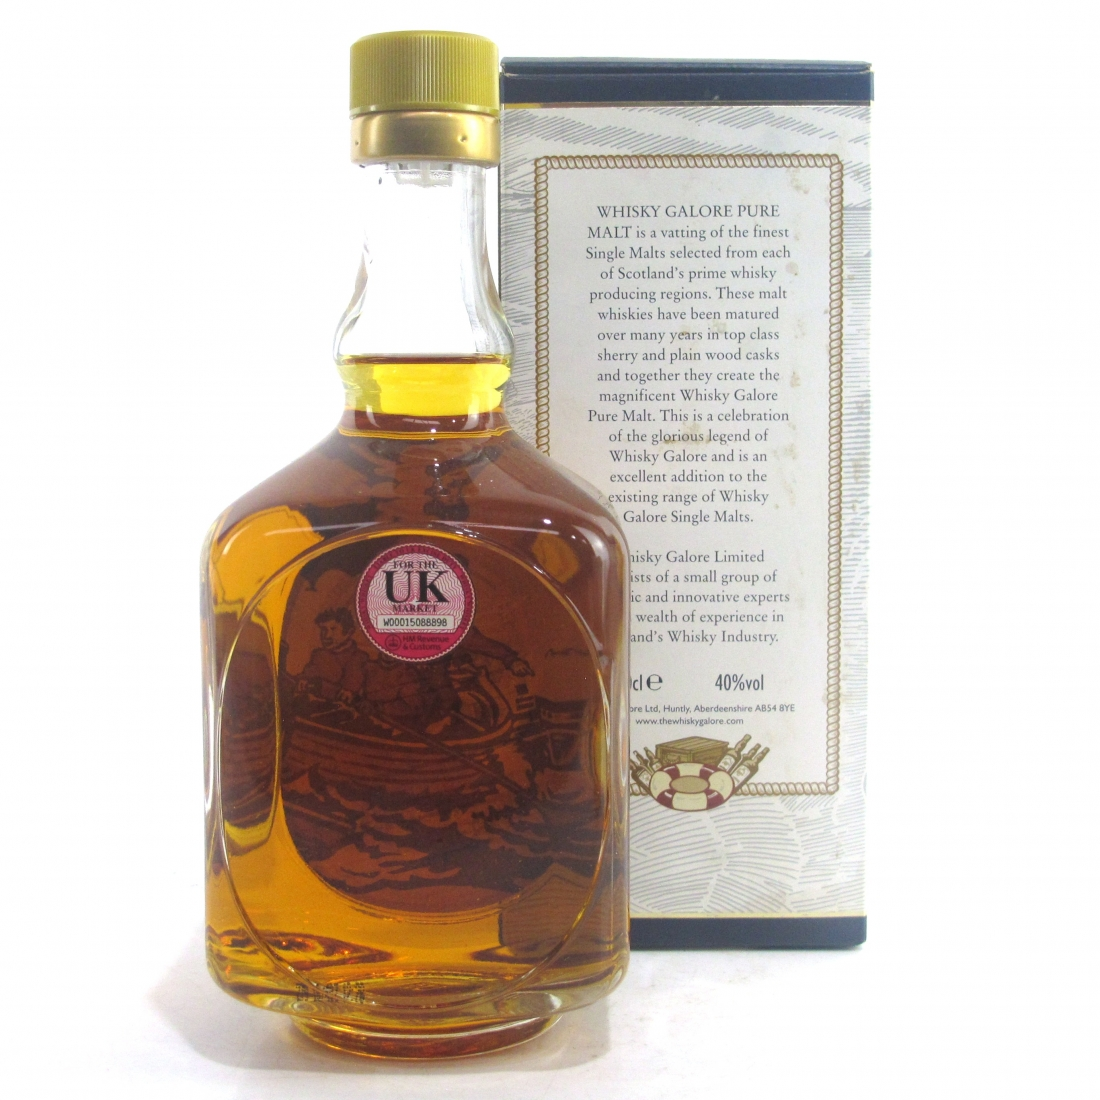 Whisky Galore 10 Year Old Pure Malt